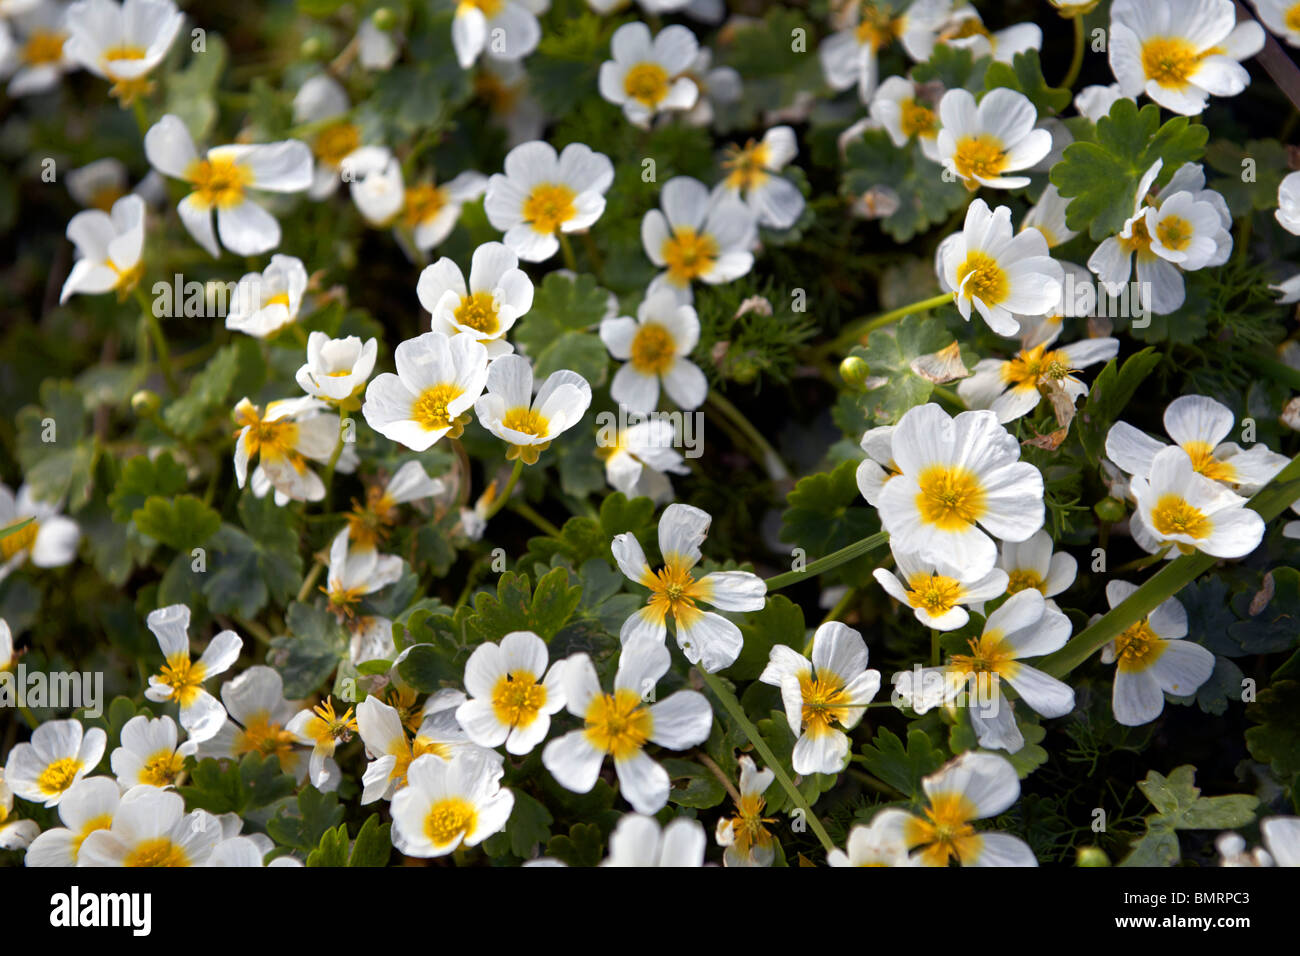 Water crowfoot plant growing in a wetland area of South Wales - Stock Image